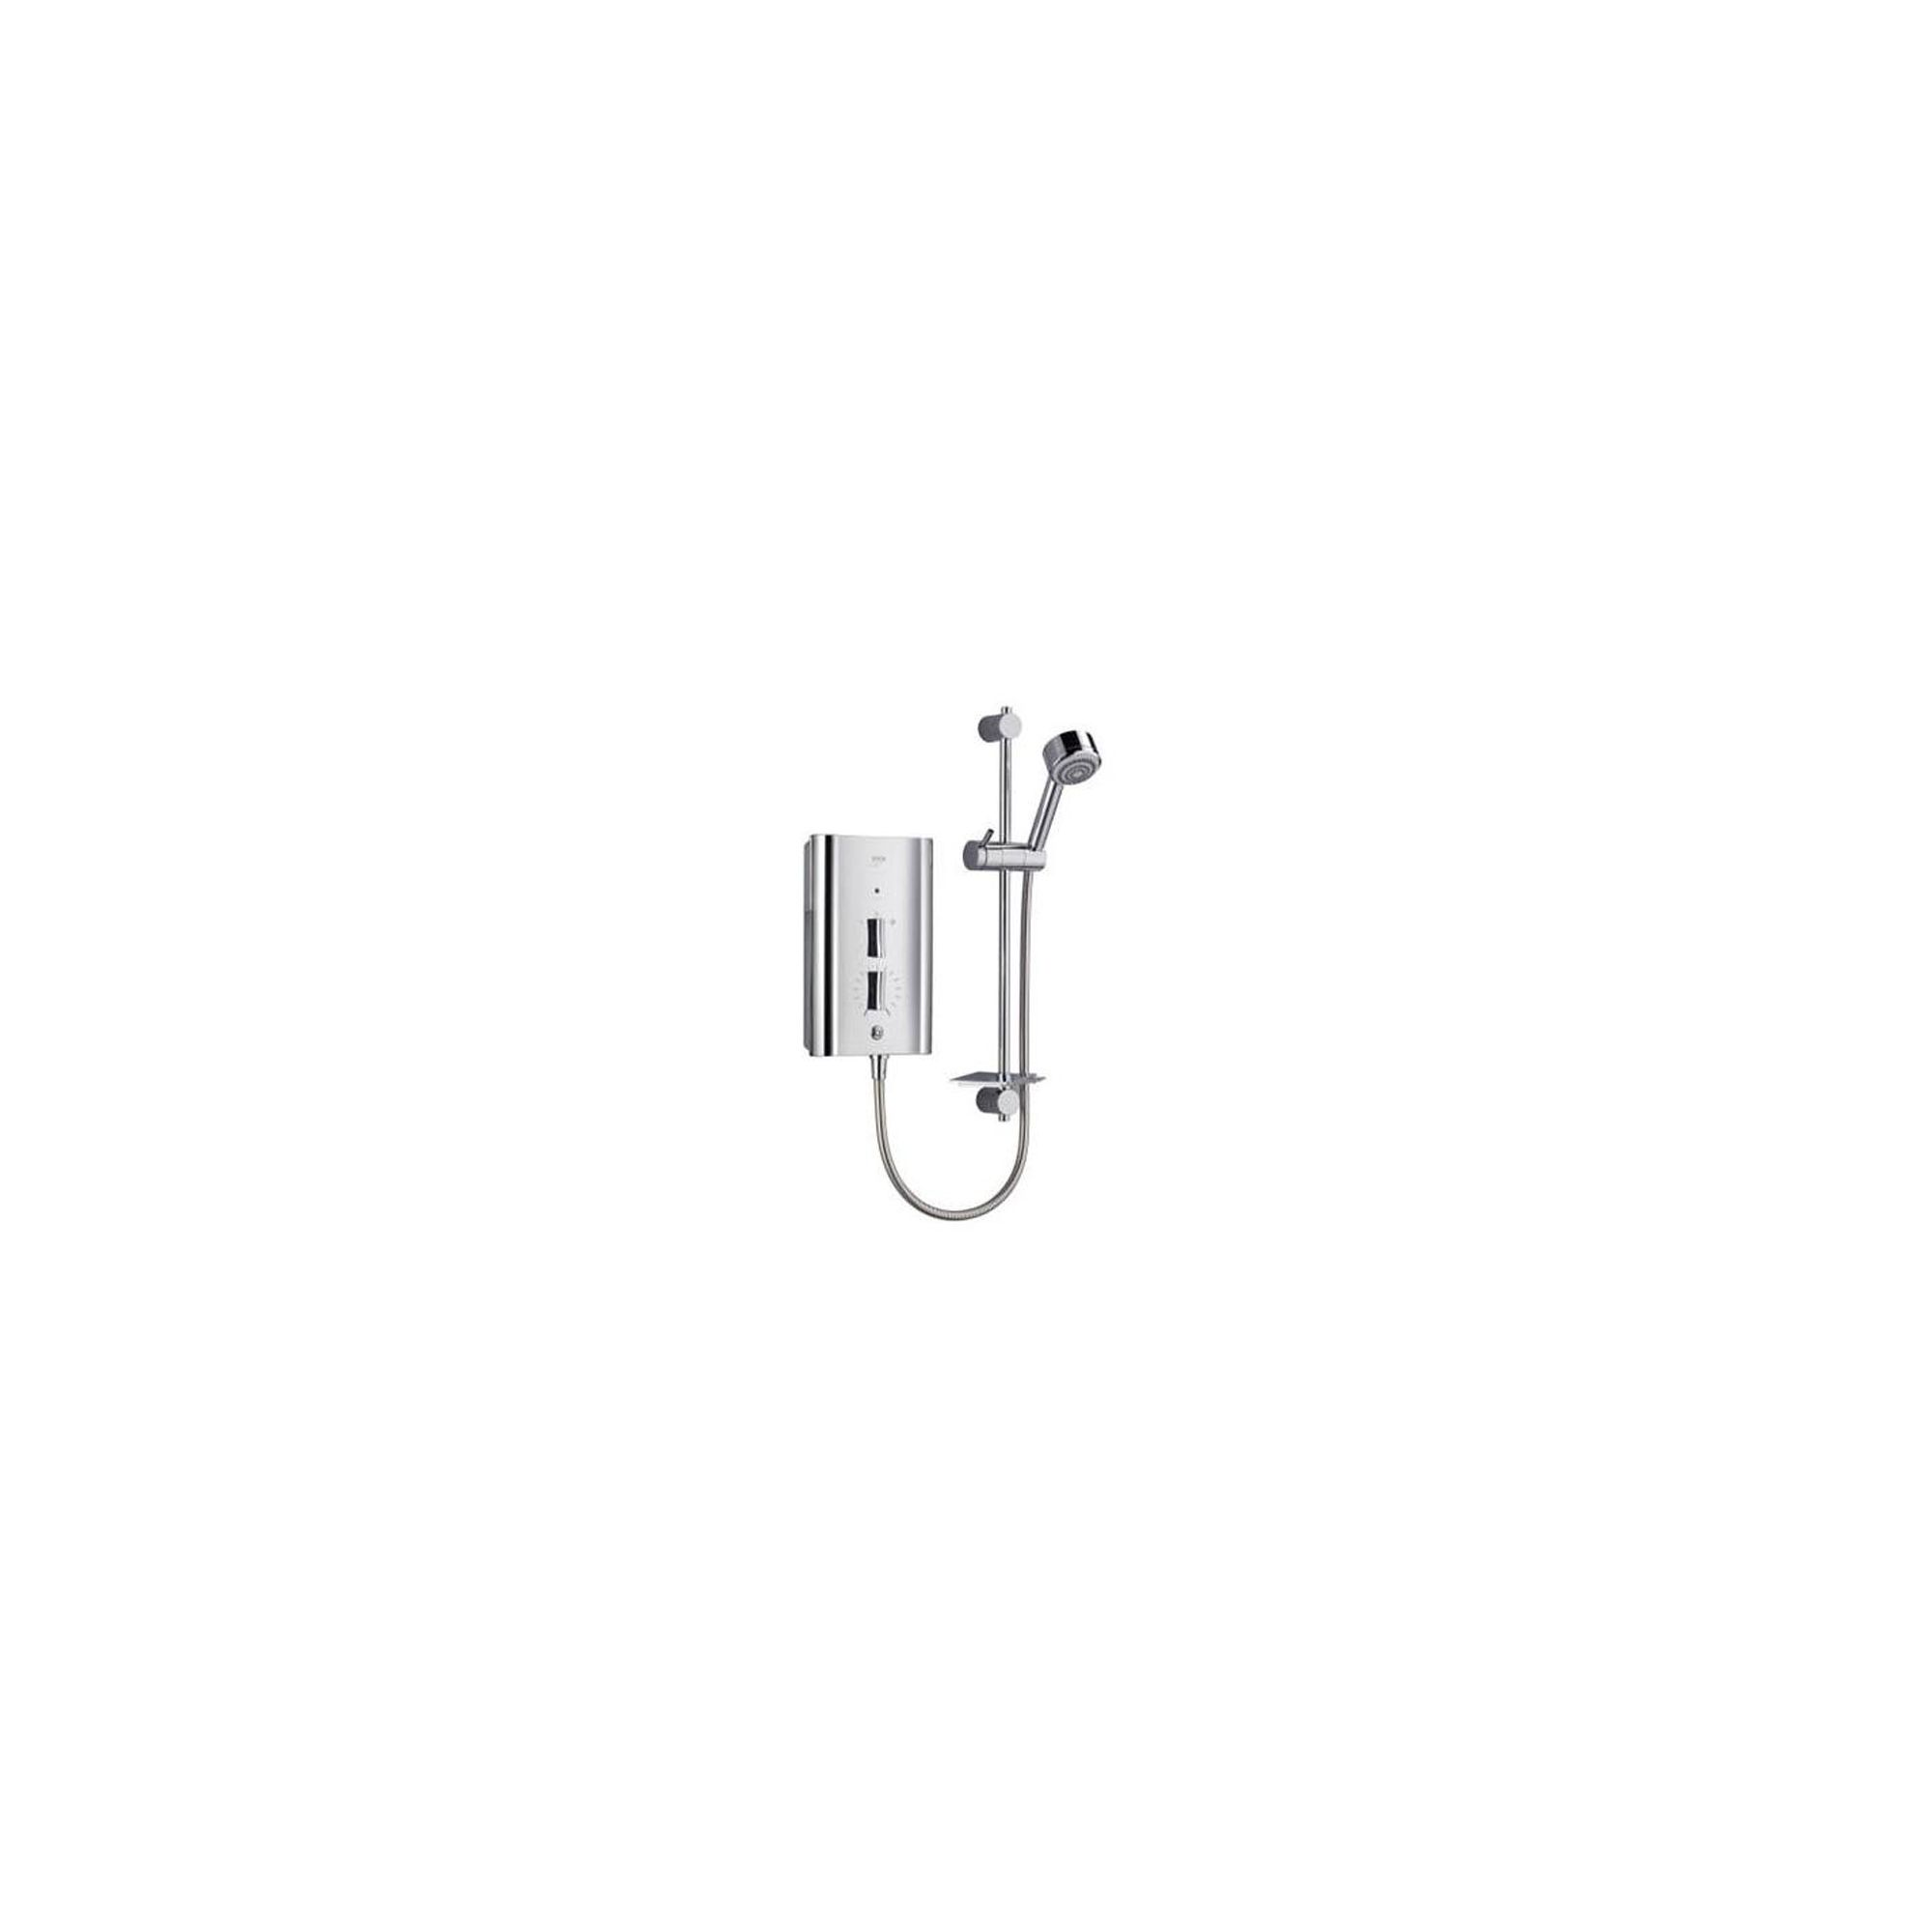 Mira Escape 9.8 kW Electric Shower, 4 Spray Handset, Chrome at Tesco Direct